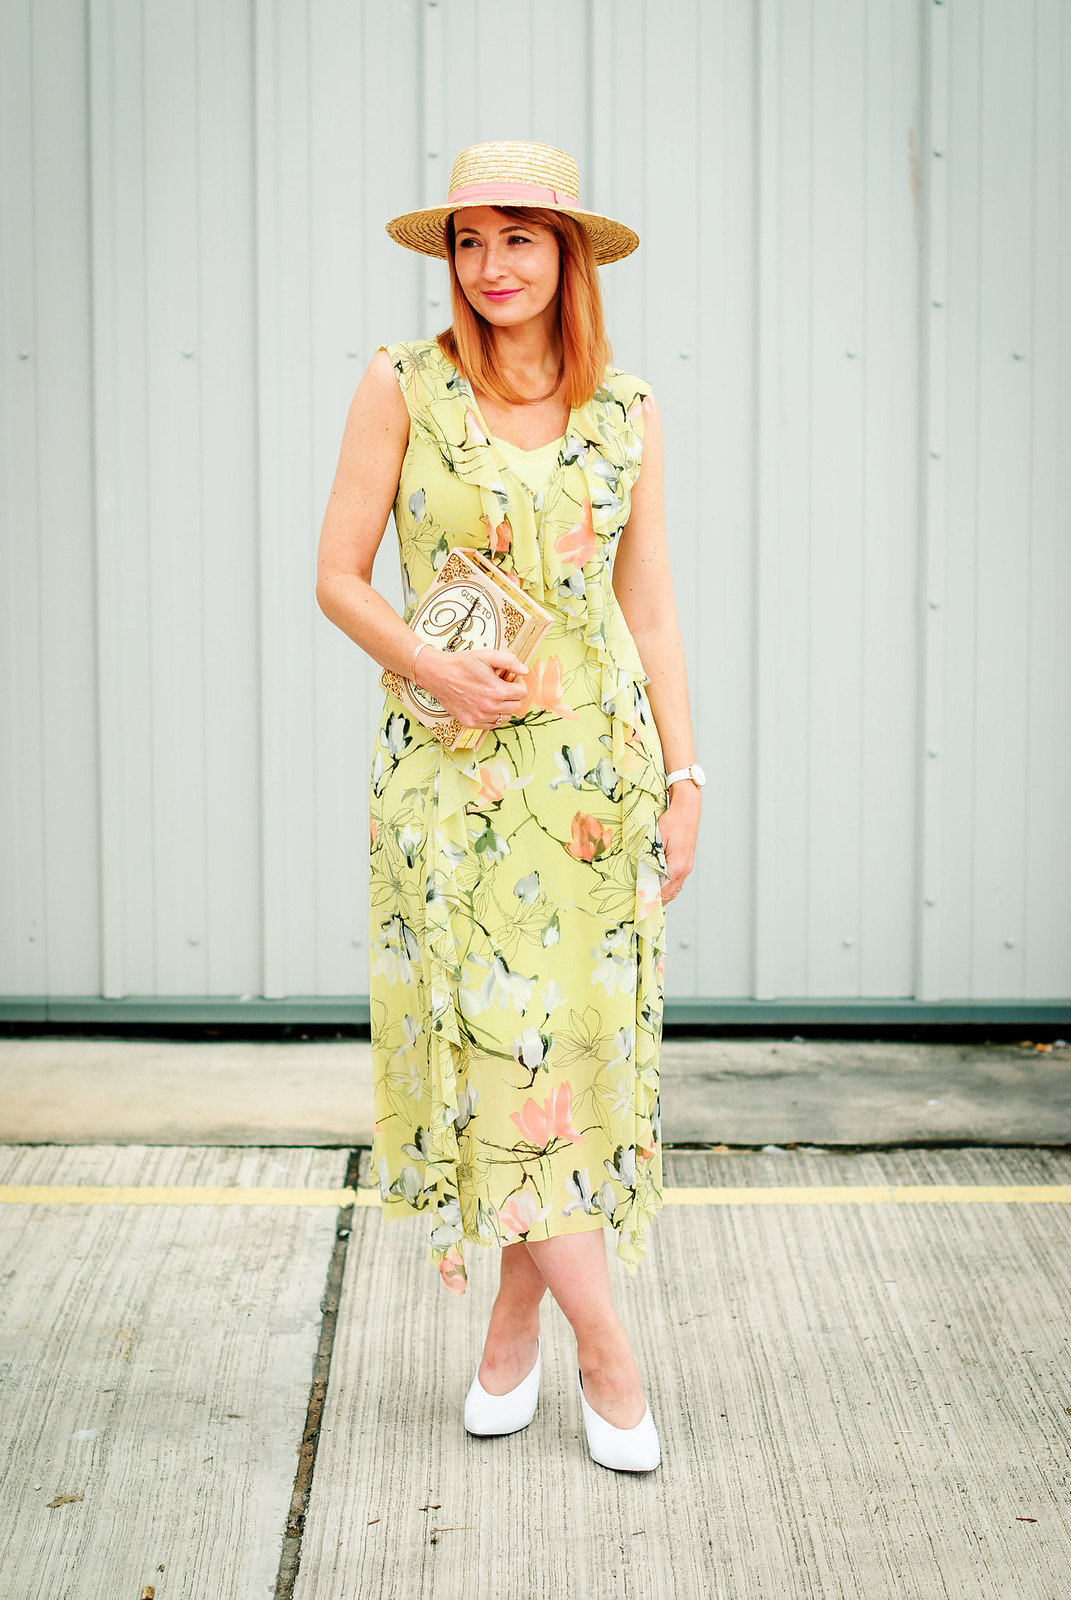 Wedding guest or garden party outfit: Pale green and pink floral midi dress with ruffles  straw boater with pink ribbon  novelty Paris book clutch  white v neck pointed toe mule heels | rose gold jewellery | Not Dressed As Lamb, over 40 style